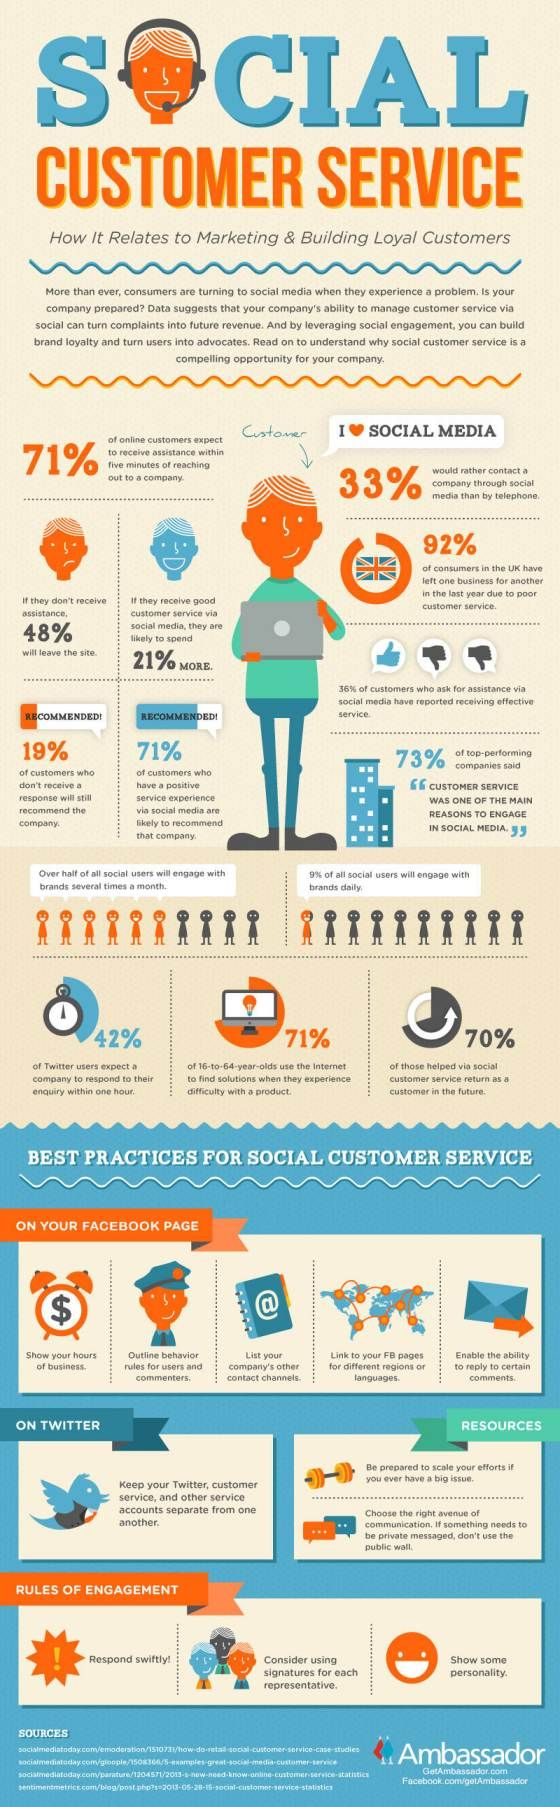 1000 images about job info interview job seekers the reason why social customer service is so important socialmedia business via imagi